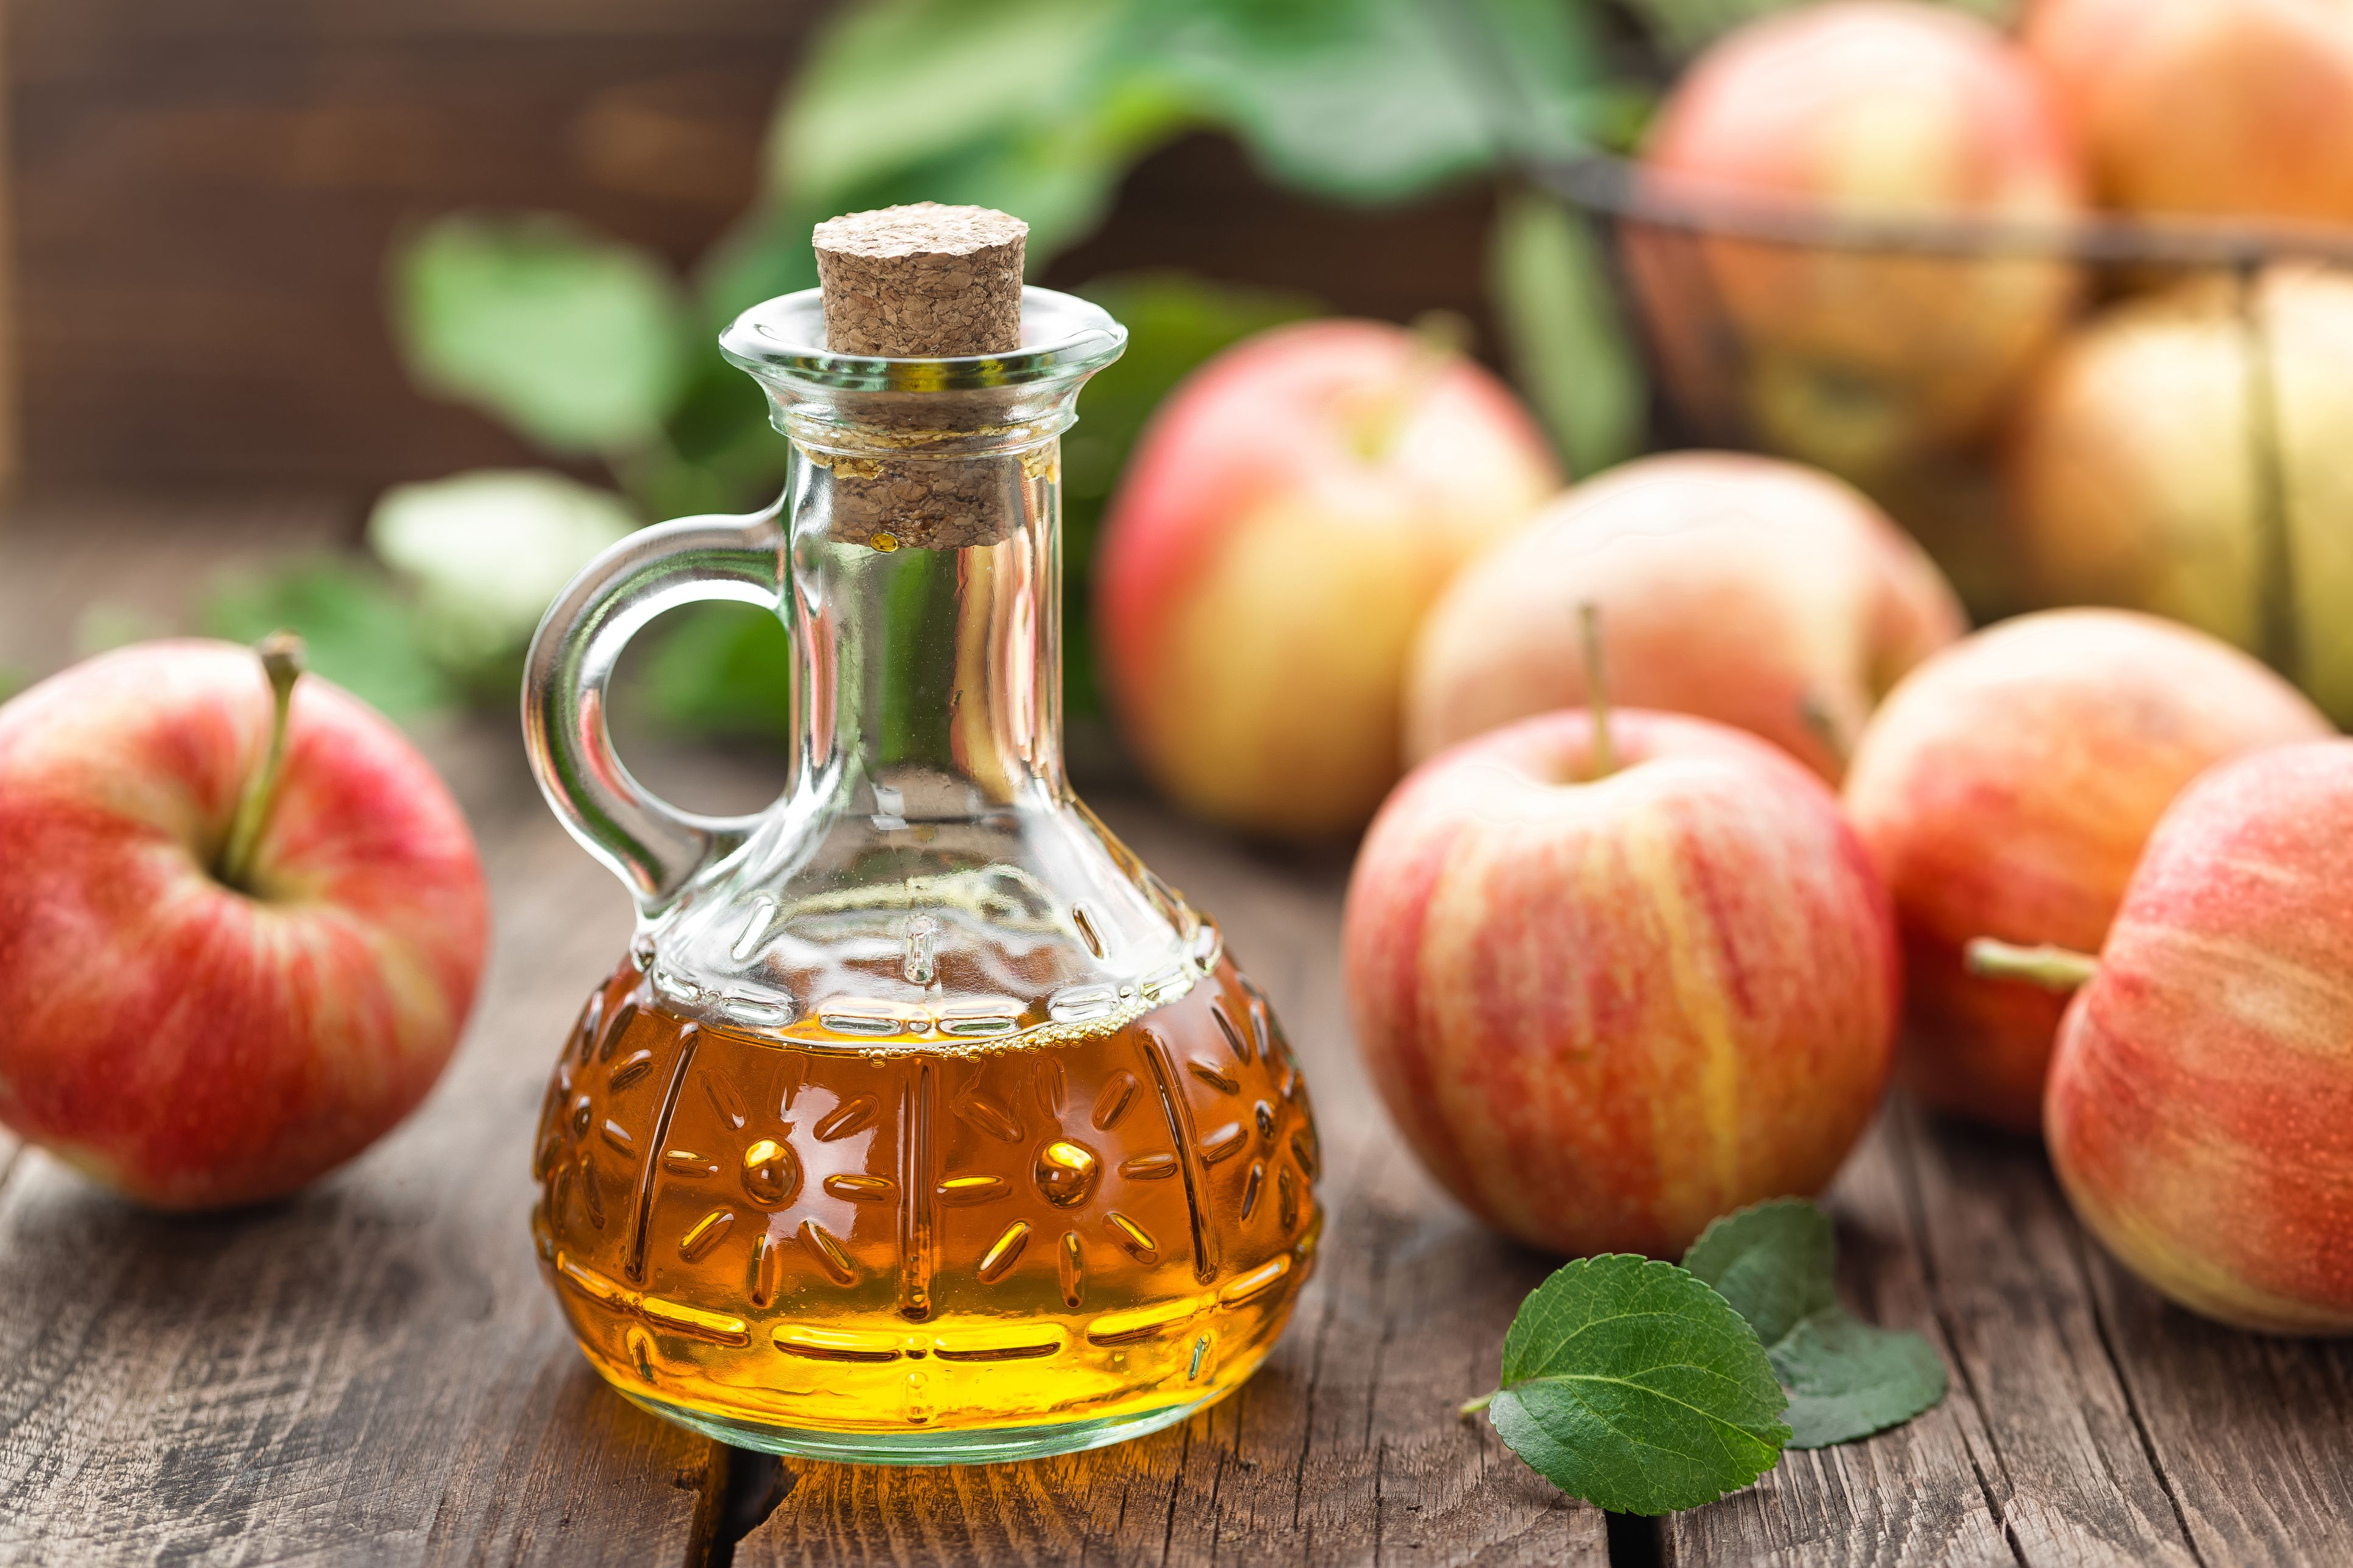 What are the useful properties of an apple